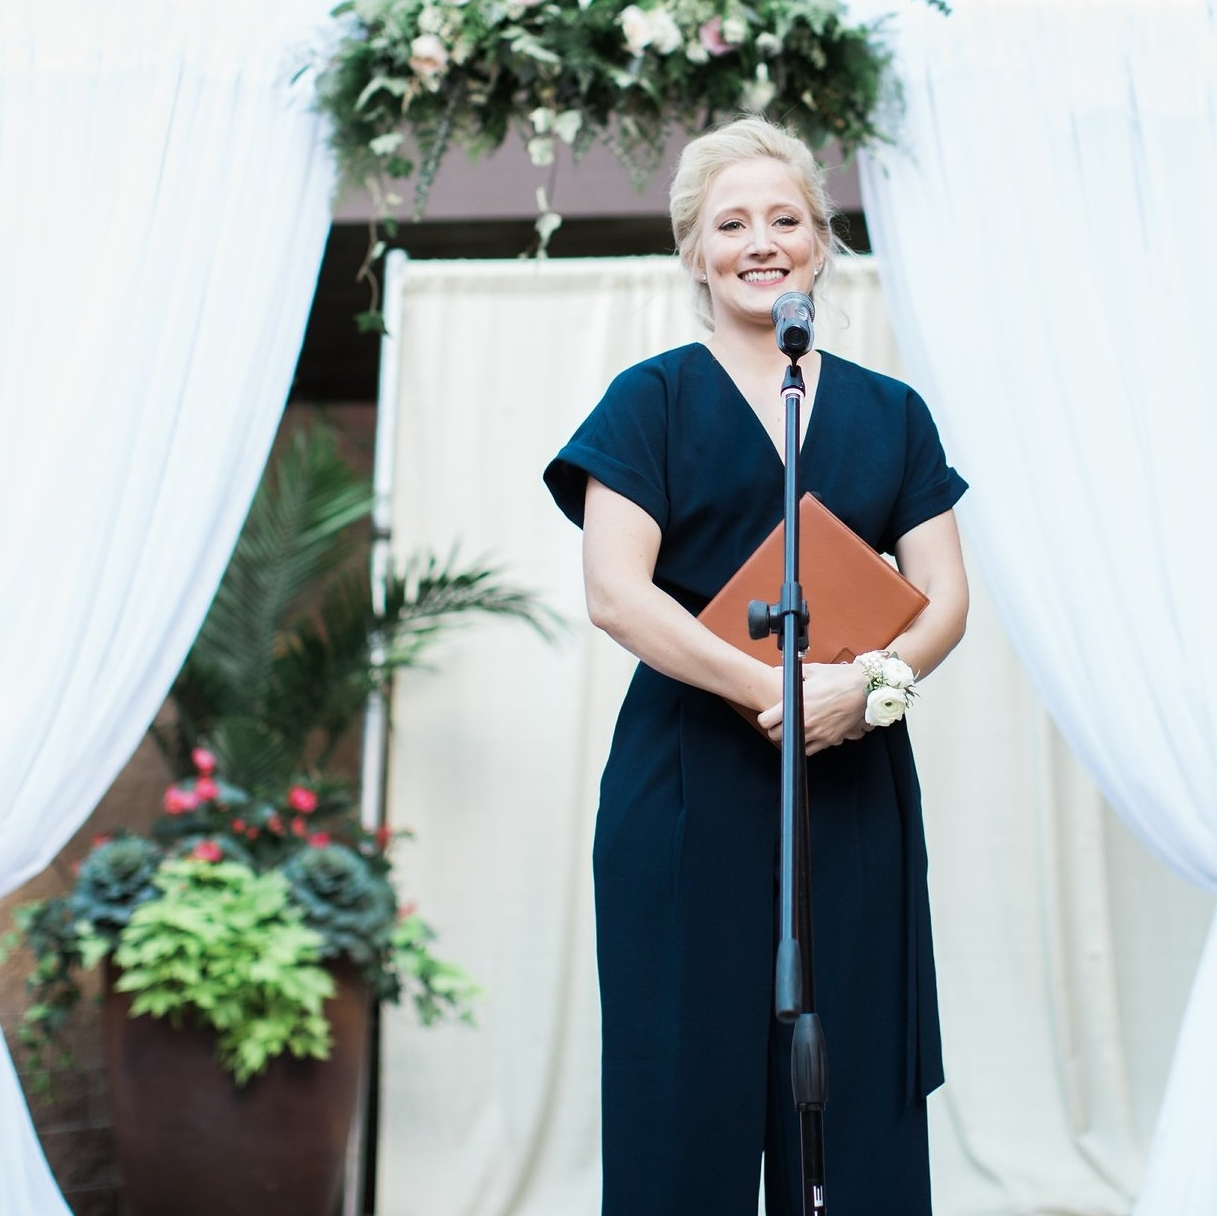 Secular Wedding Officiant - Personalized ceremony development including consultation on vows, readings, music and legal requirements